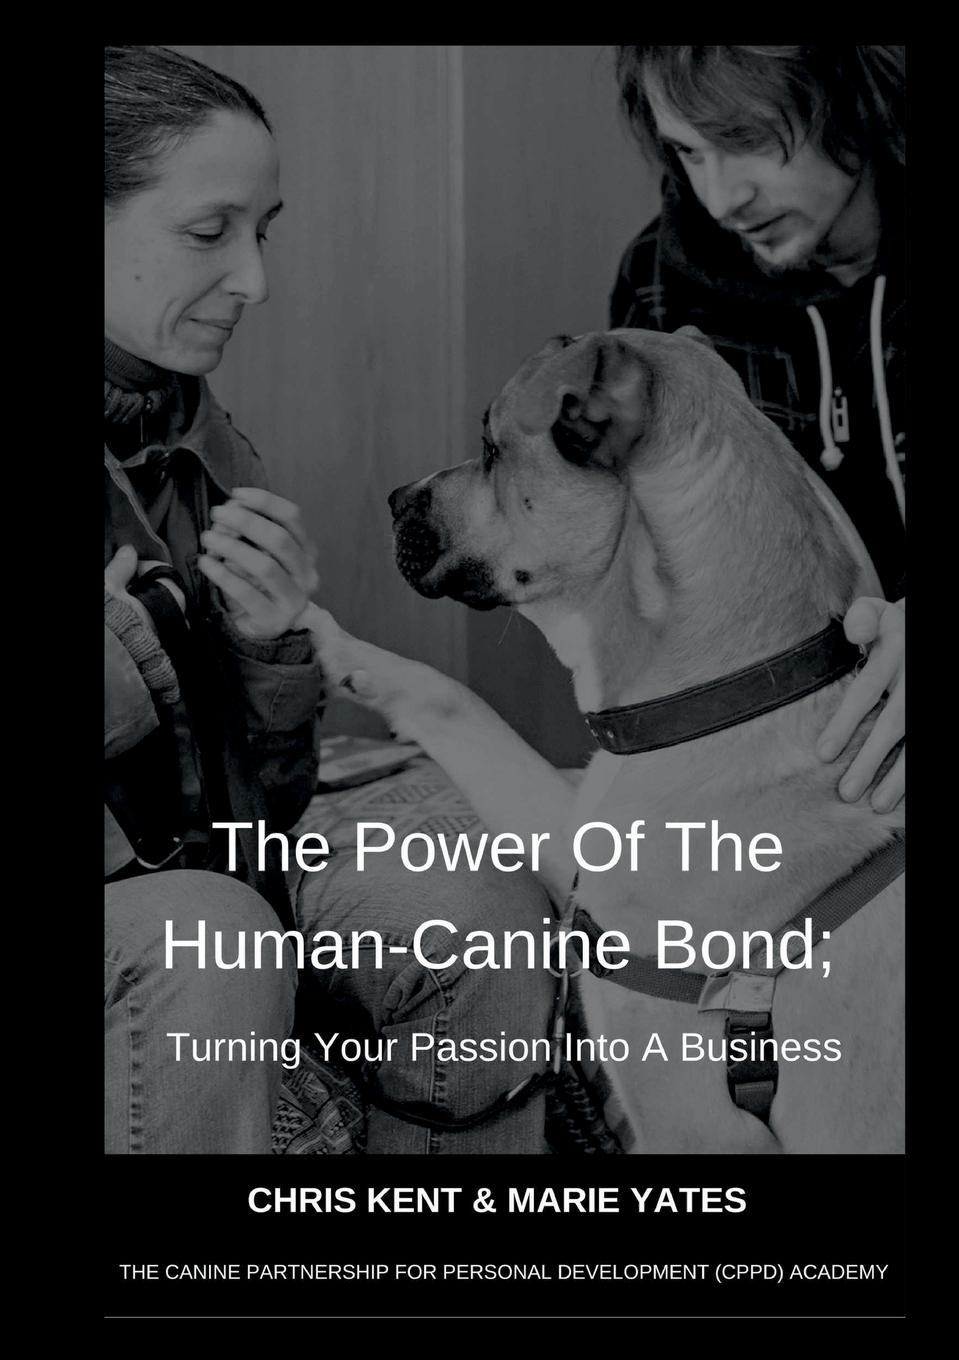 Chris Kent, Marie Yates The Power Of The Human-Canine Bond; Turning Your Passion Into A Business carlye adler the power of positive destruction how to turn a business idea into a revolution